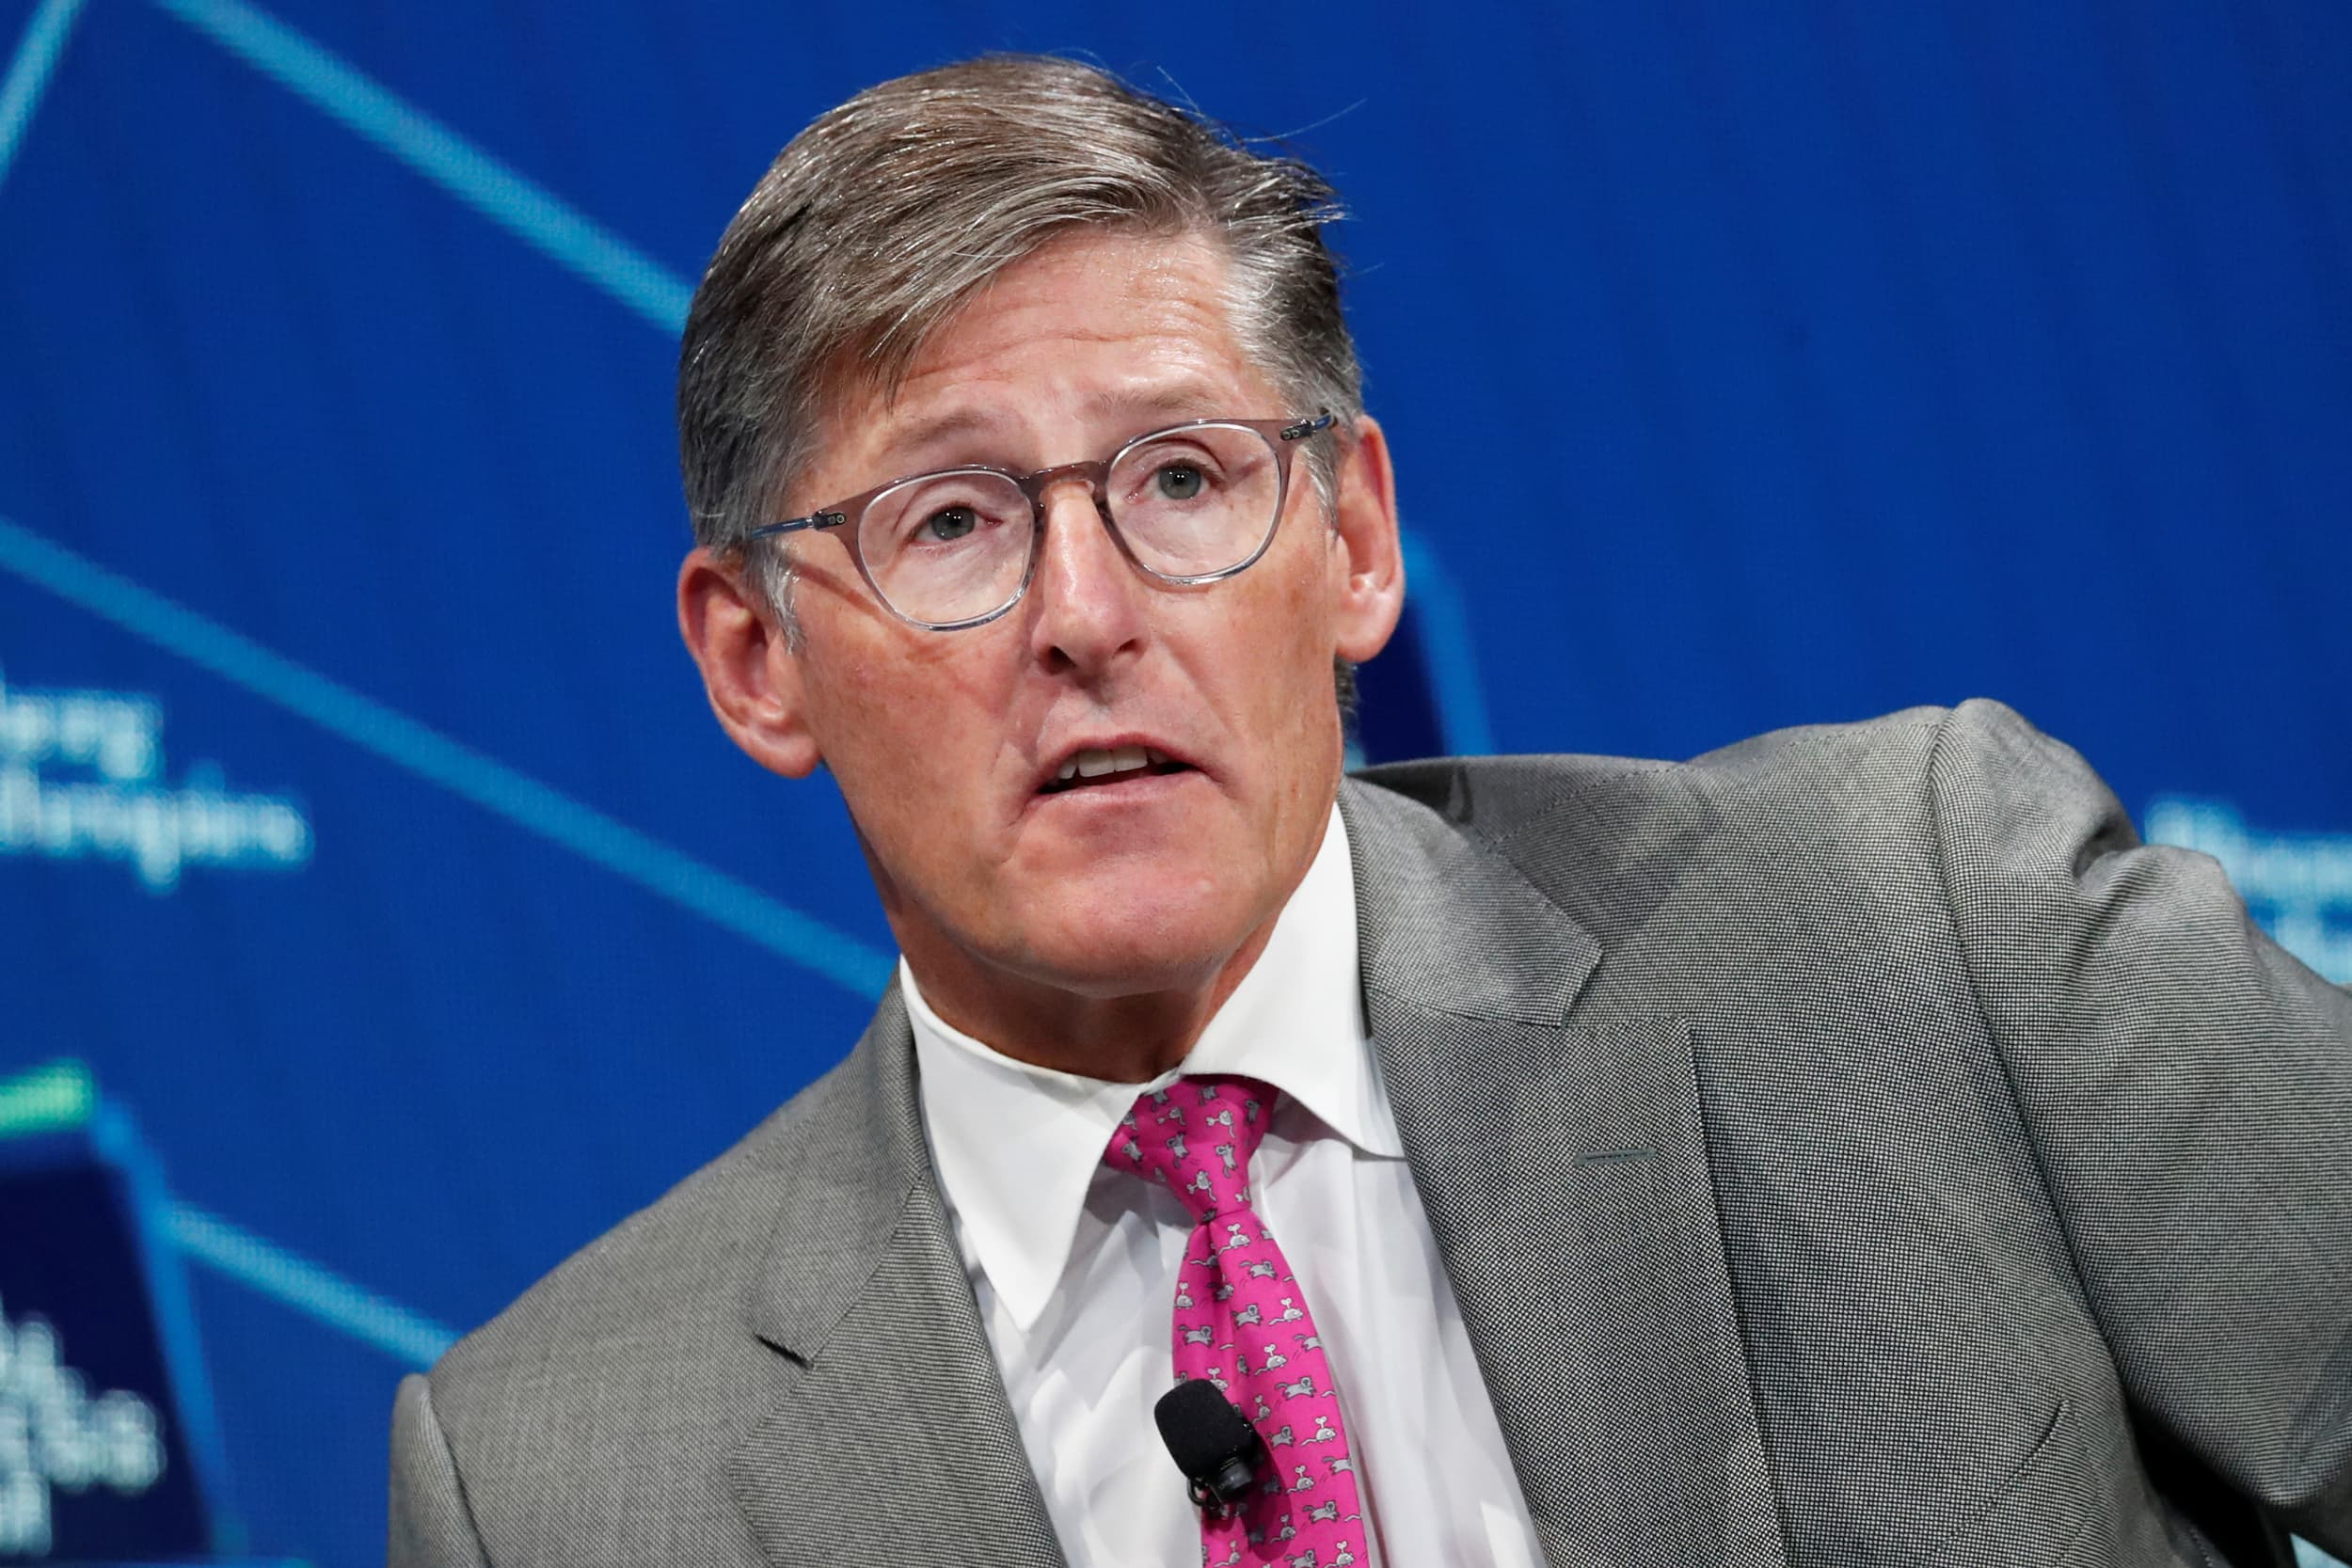 Citigroup earnings beat on better-than-expected trading results